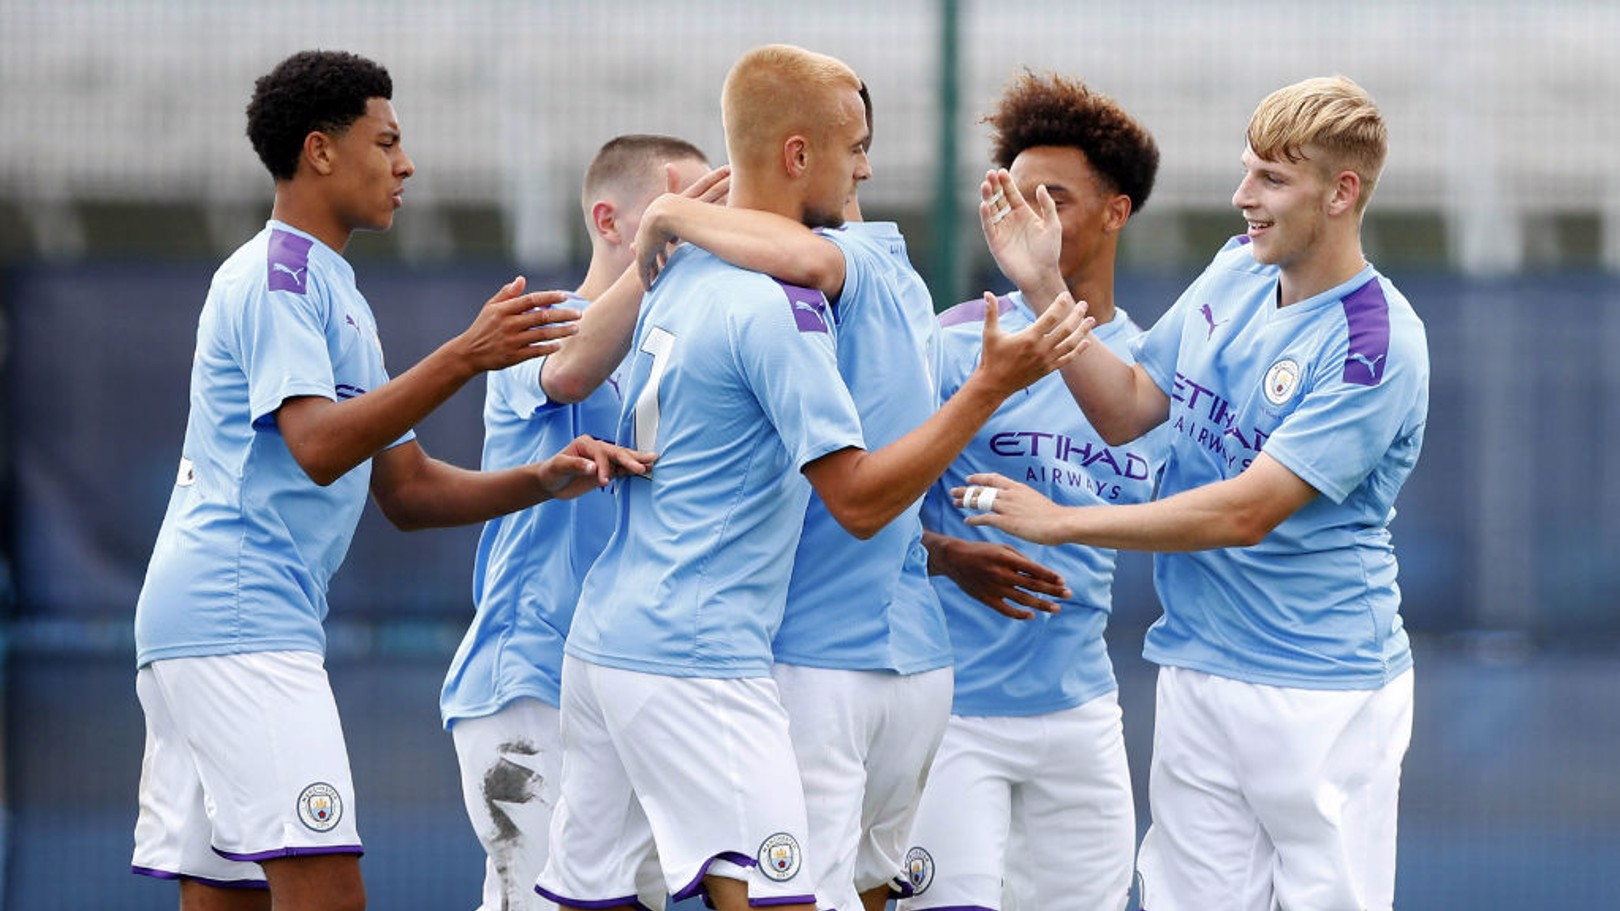 SEVEN UP: The City players celebrate during Saturday's 7-1 victory over Newcastle United